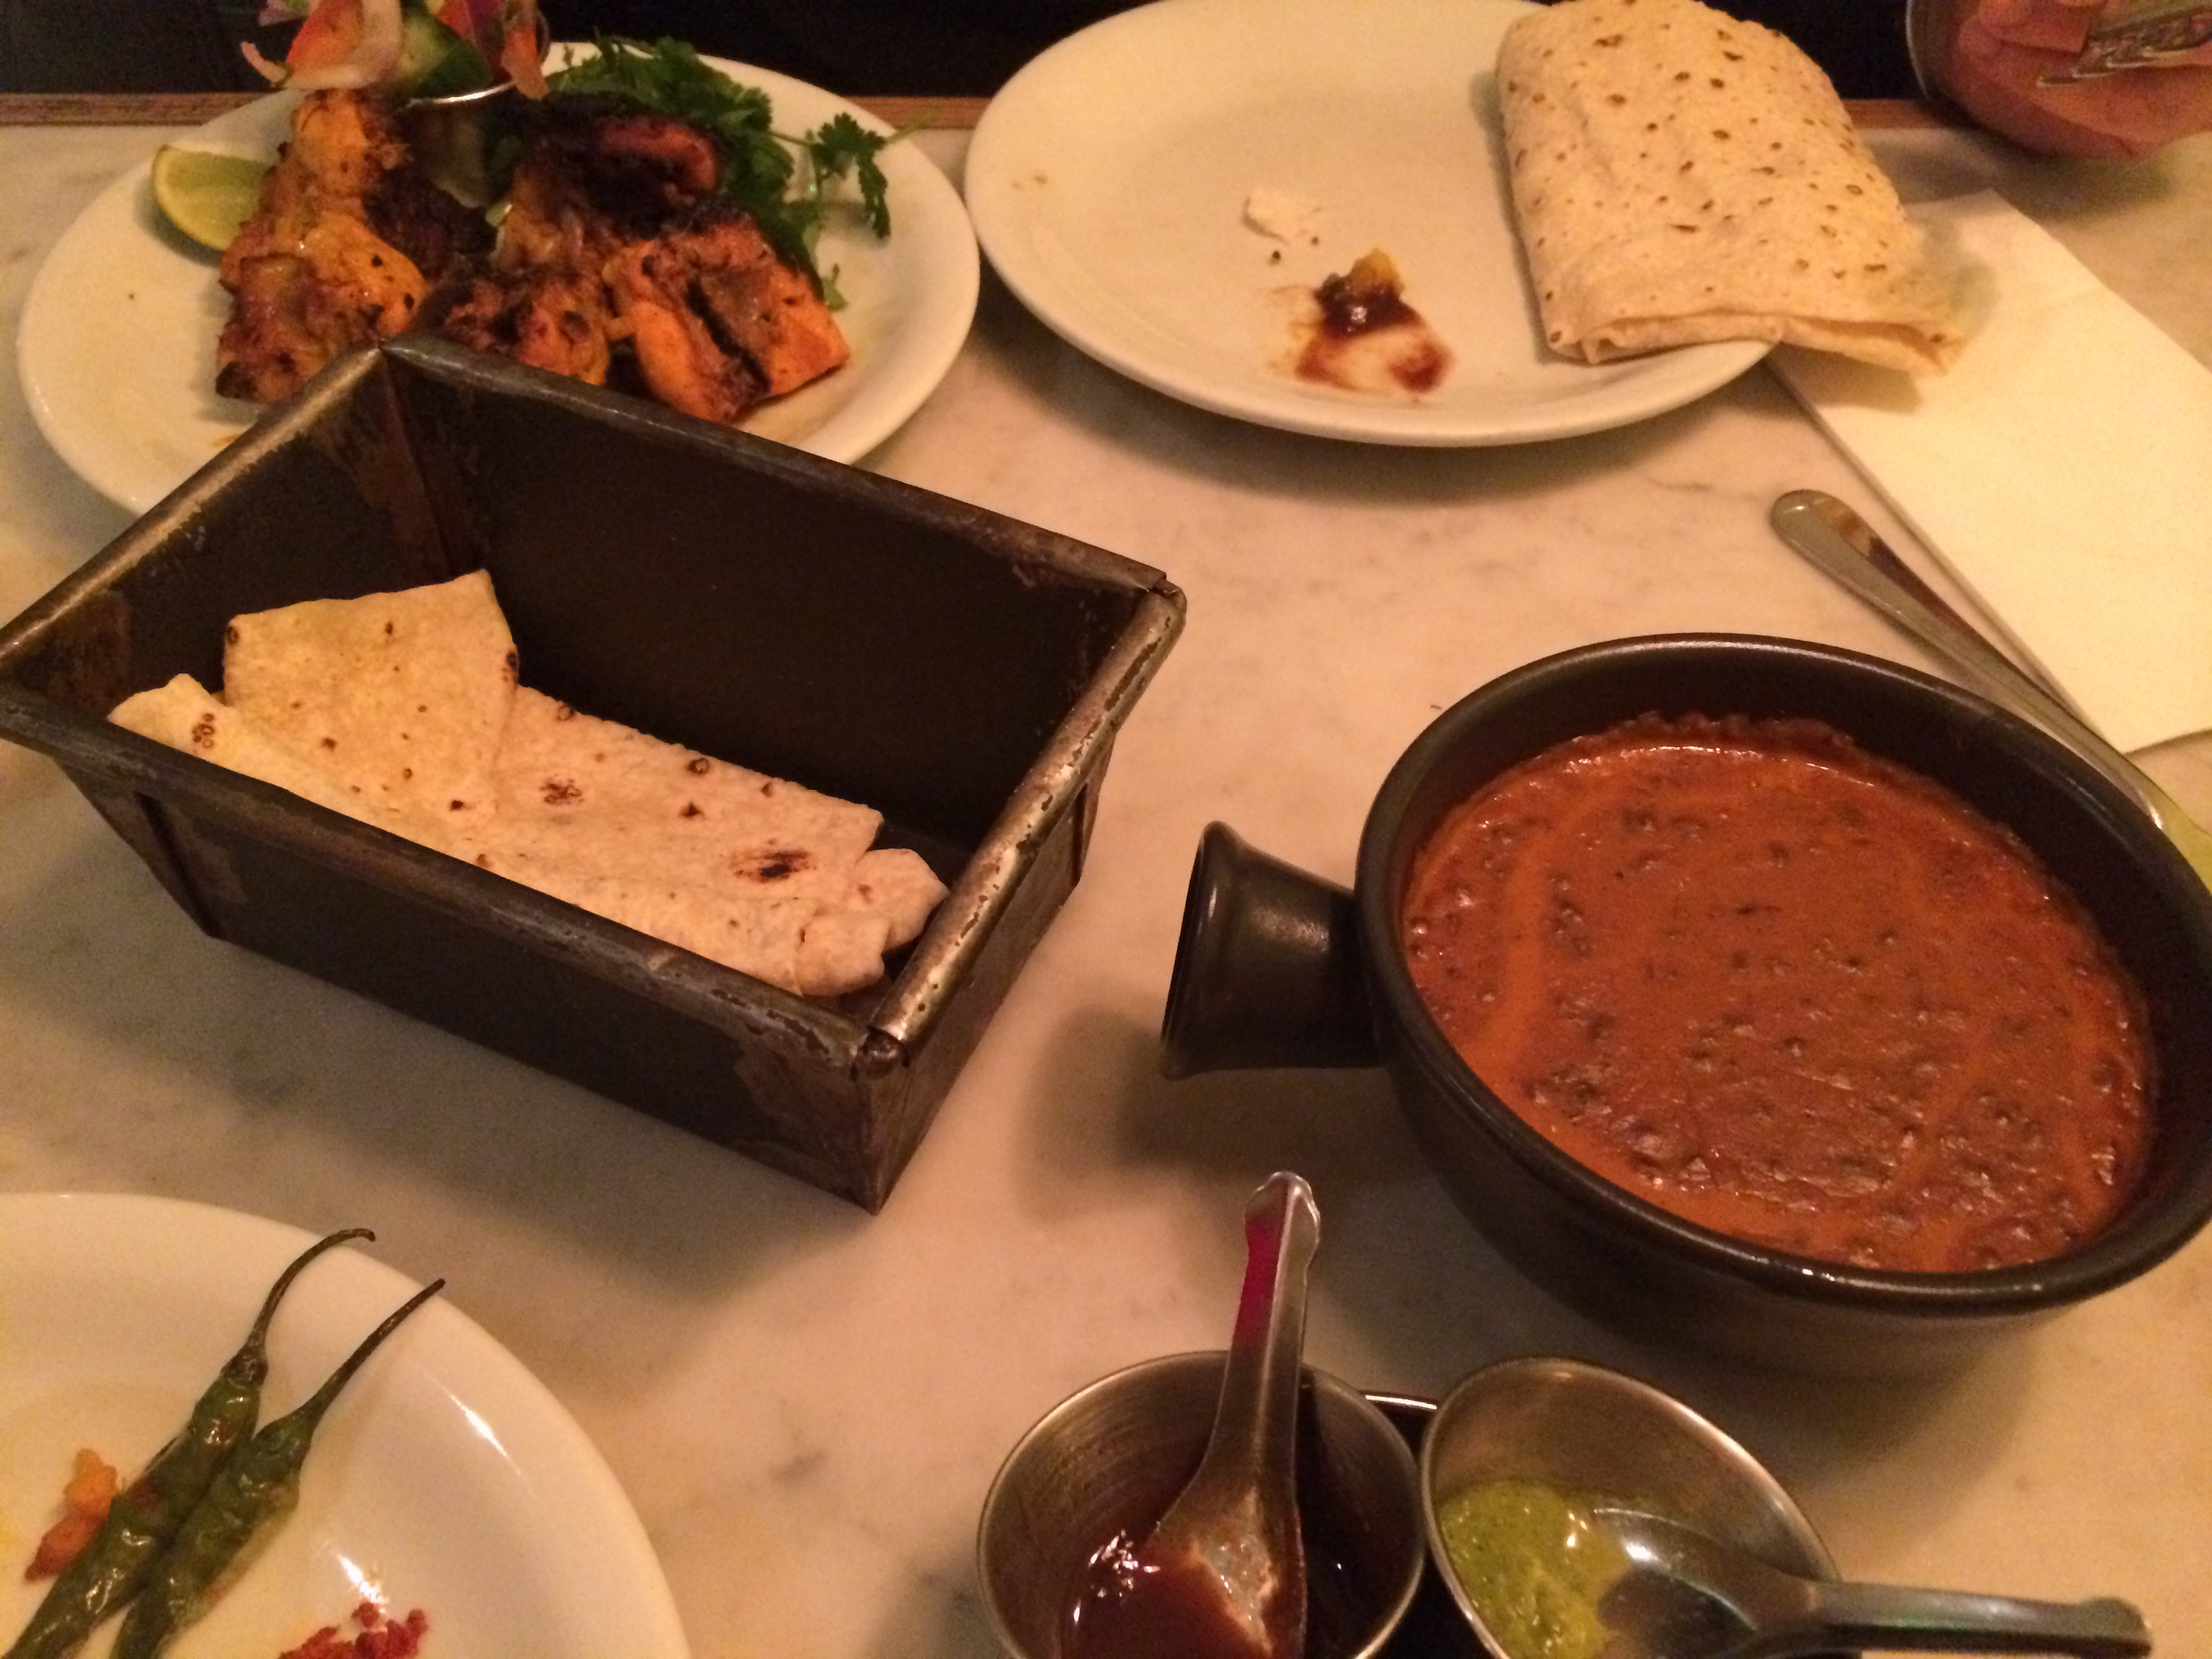 dishoom-cafe-makhani-daal-roomali-roti-paneer-tikka-chutneys